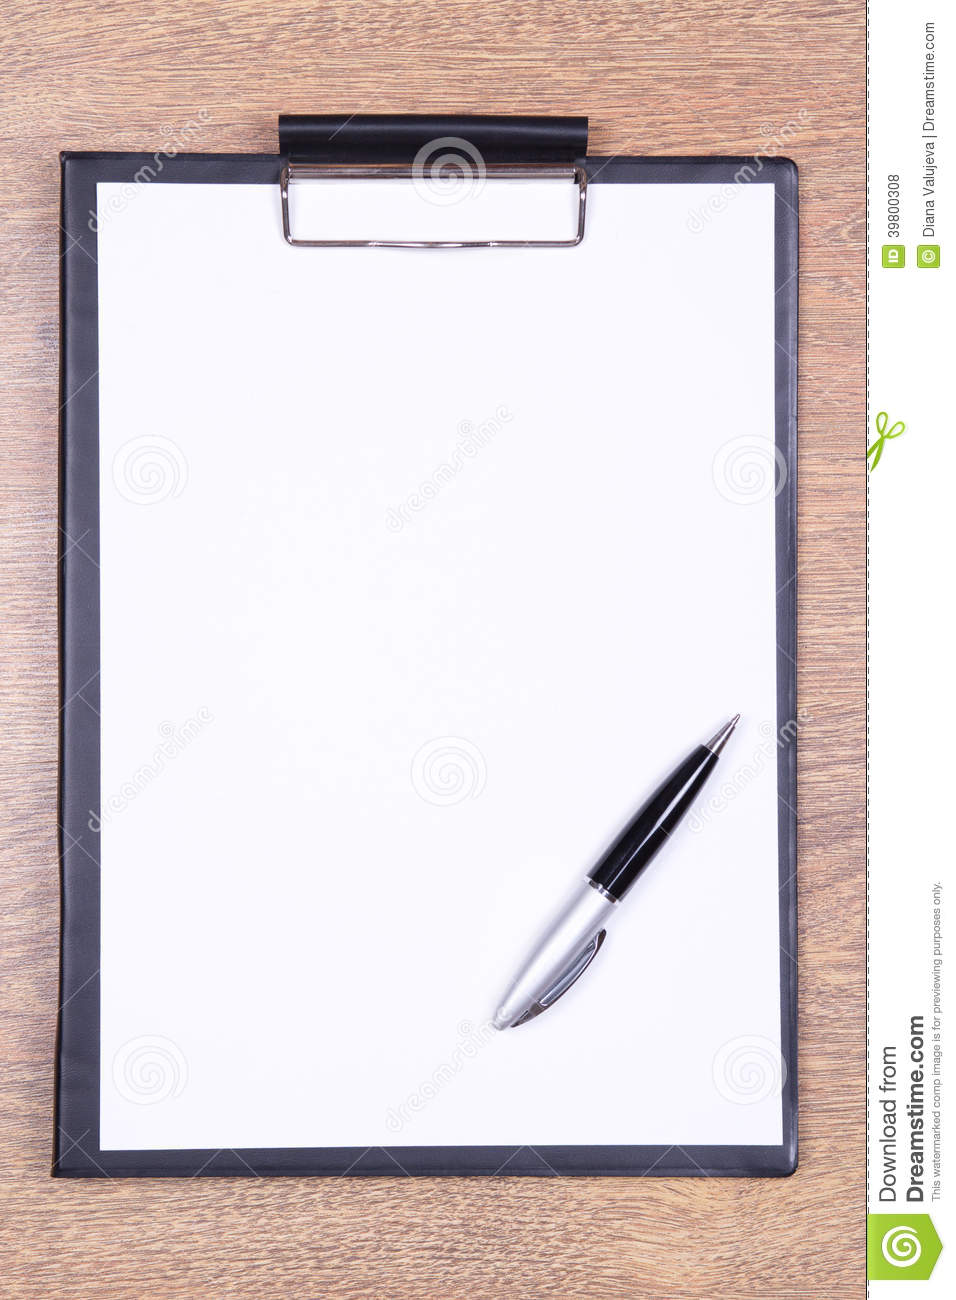 Clipboard With Blank Paper And Pen On Wooden Table Stock